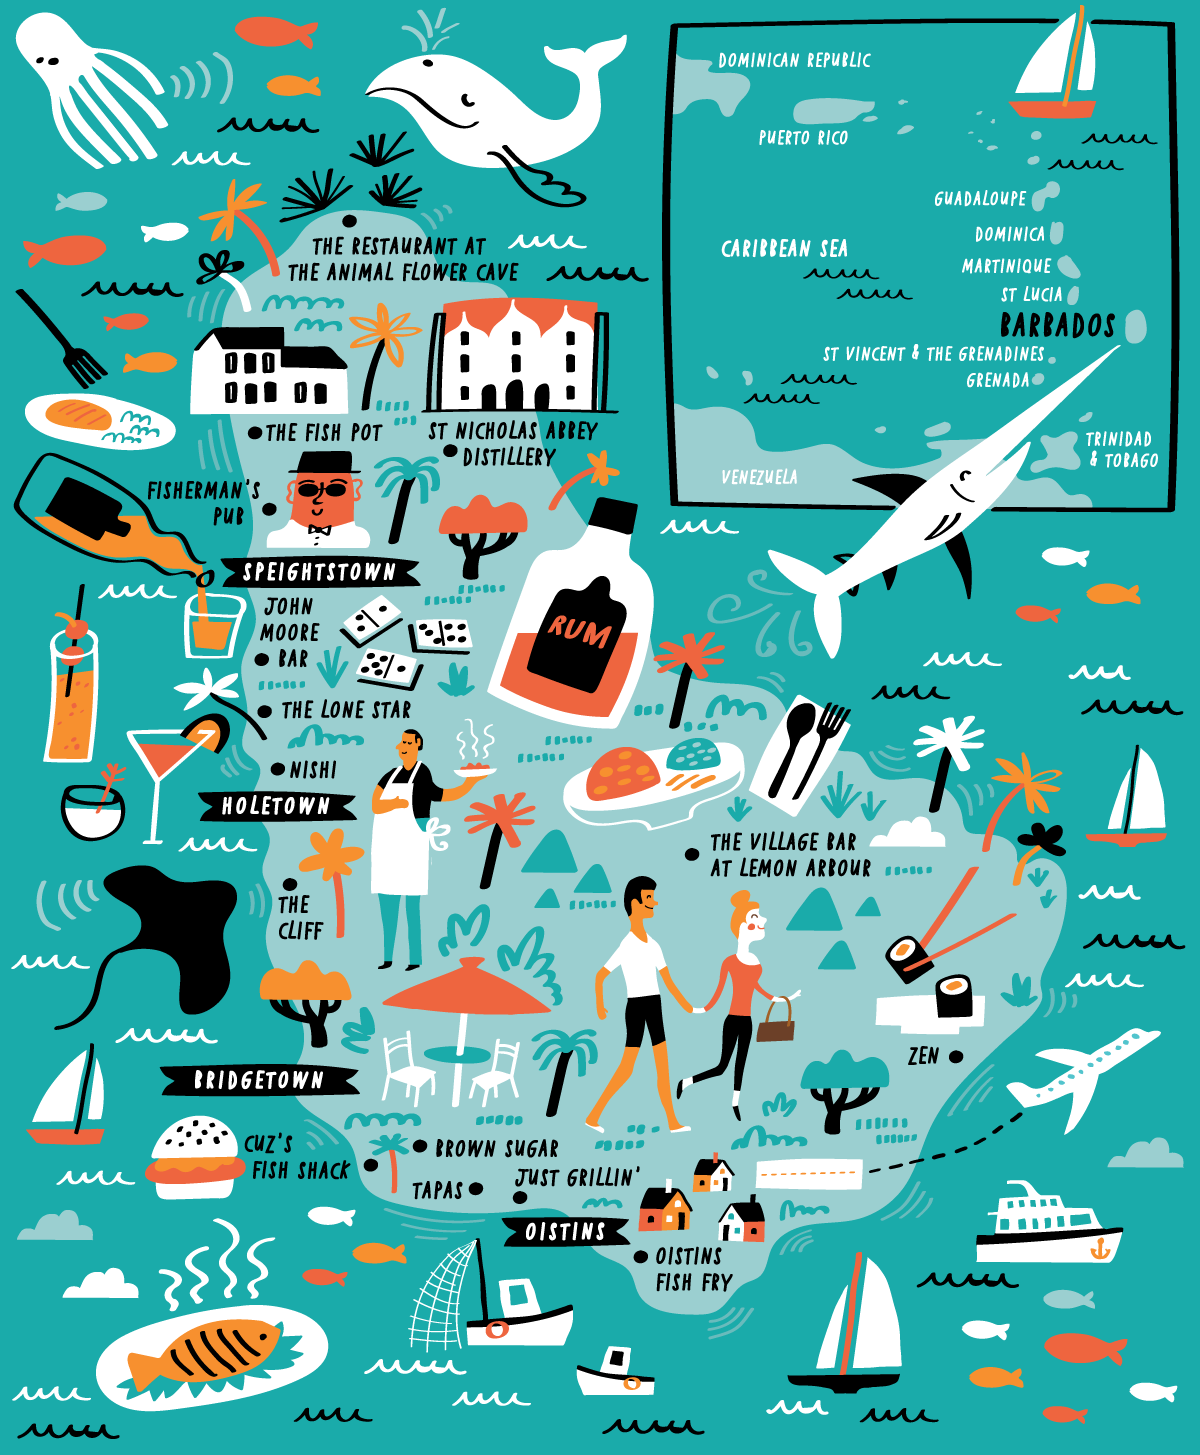 Illustrated Map of Barbados by Nate Padavick in 2019.